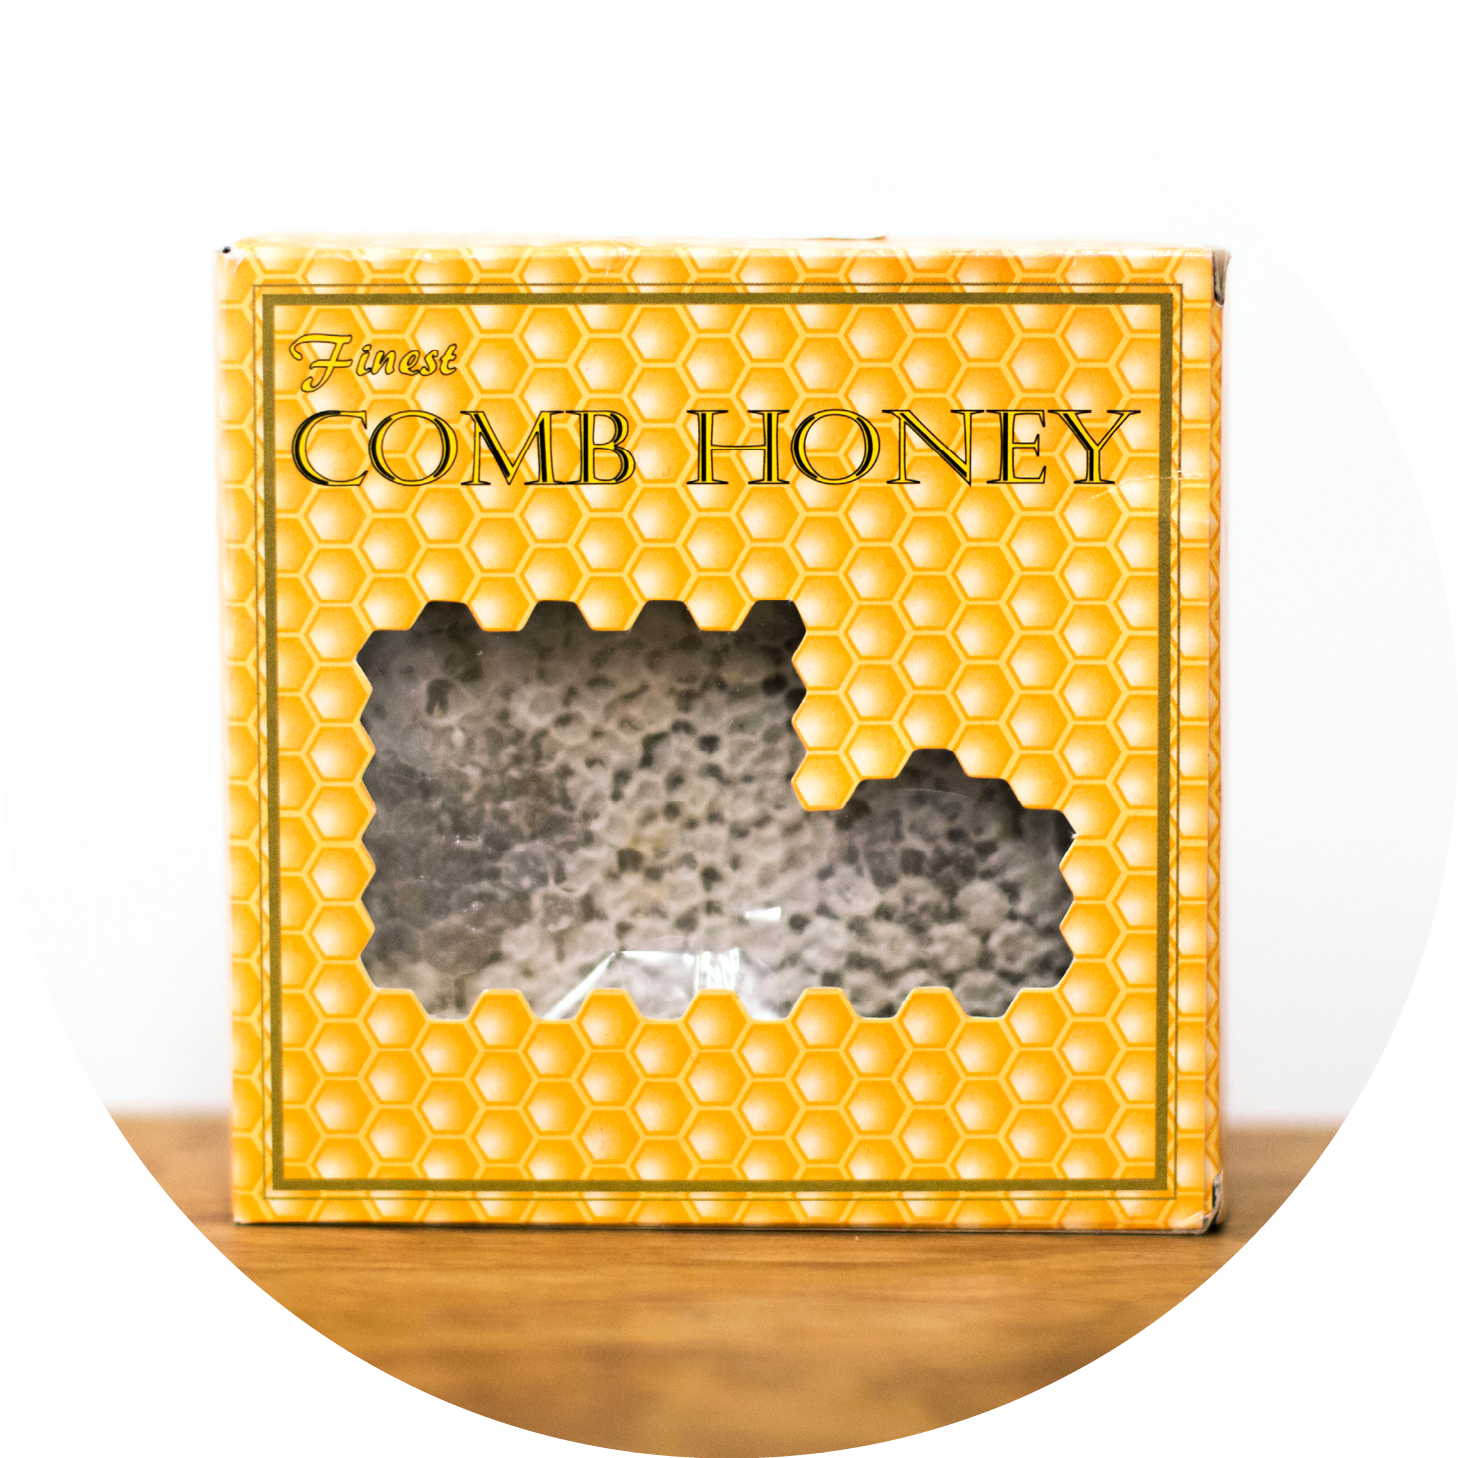 Comb Honey - Sold outComb or Section honey as it is also known, is built by bees directly into the wooden box you receive it in. Harvested in Donegal, it is a speciality item and a wonderful gift for bee lovers.